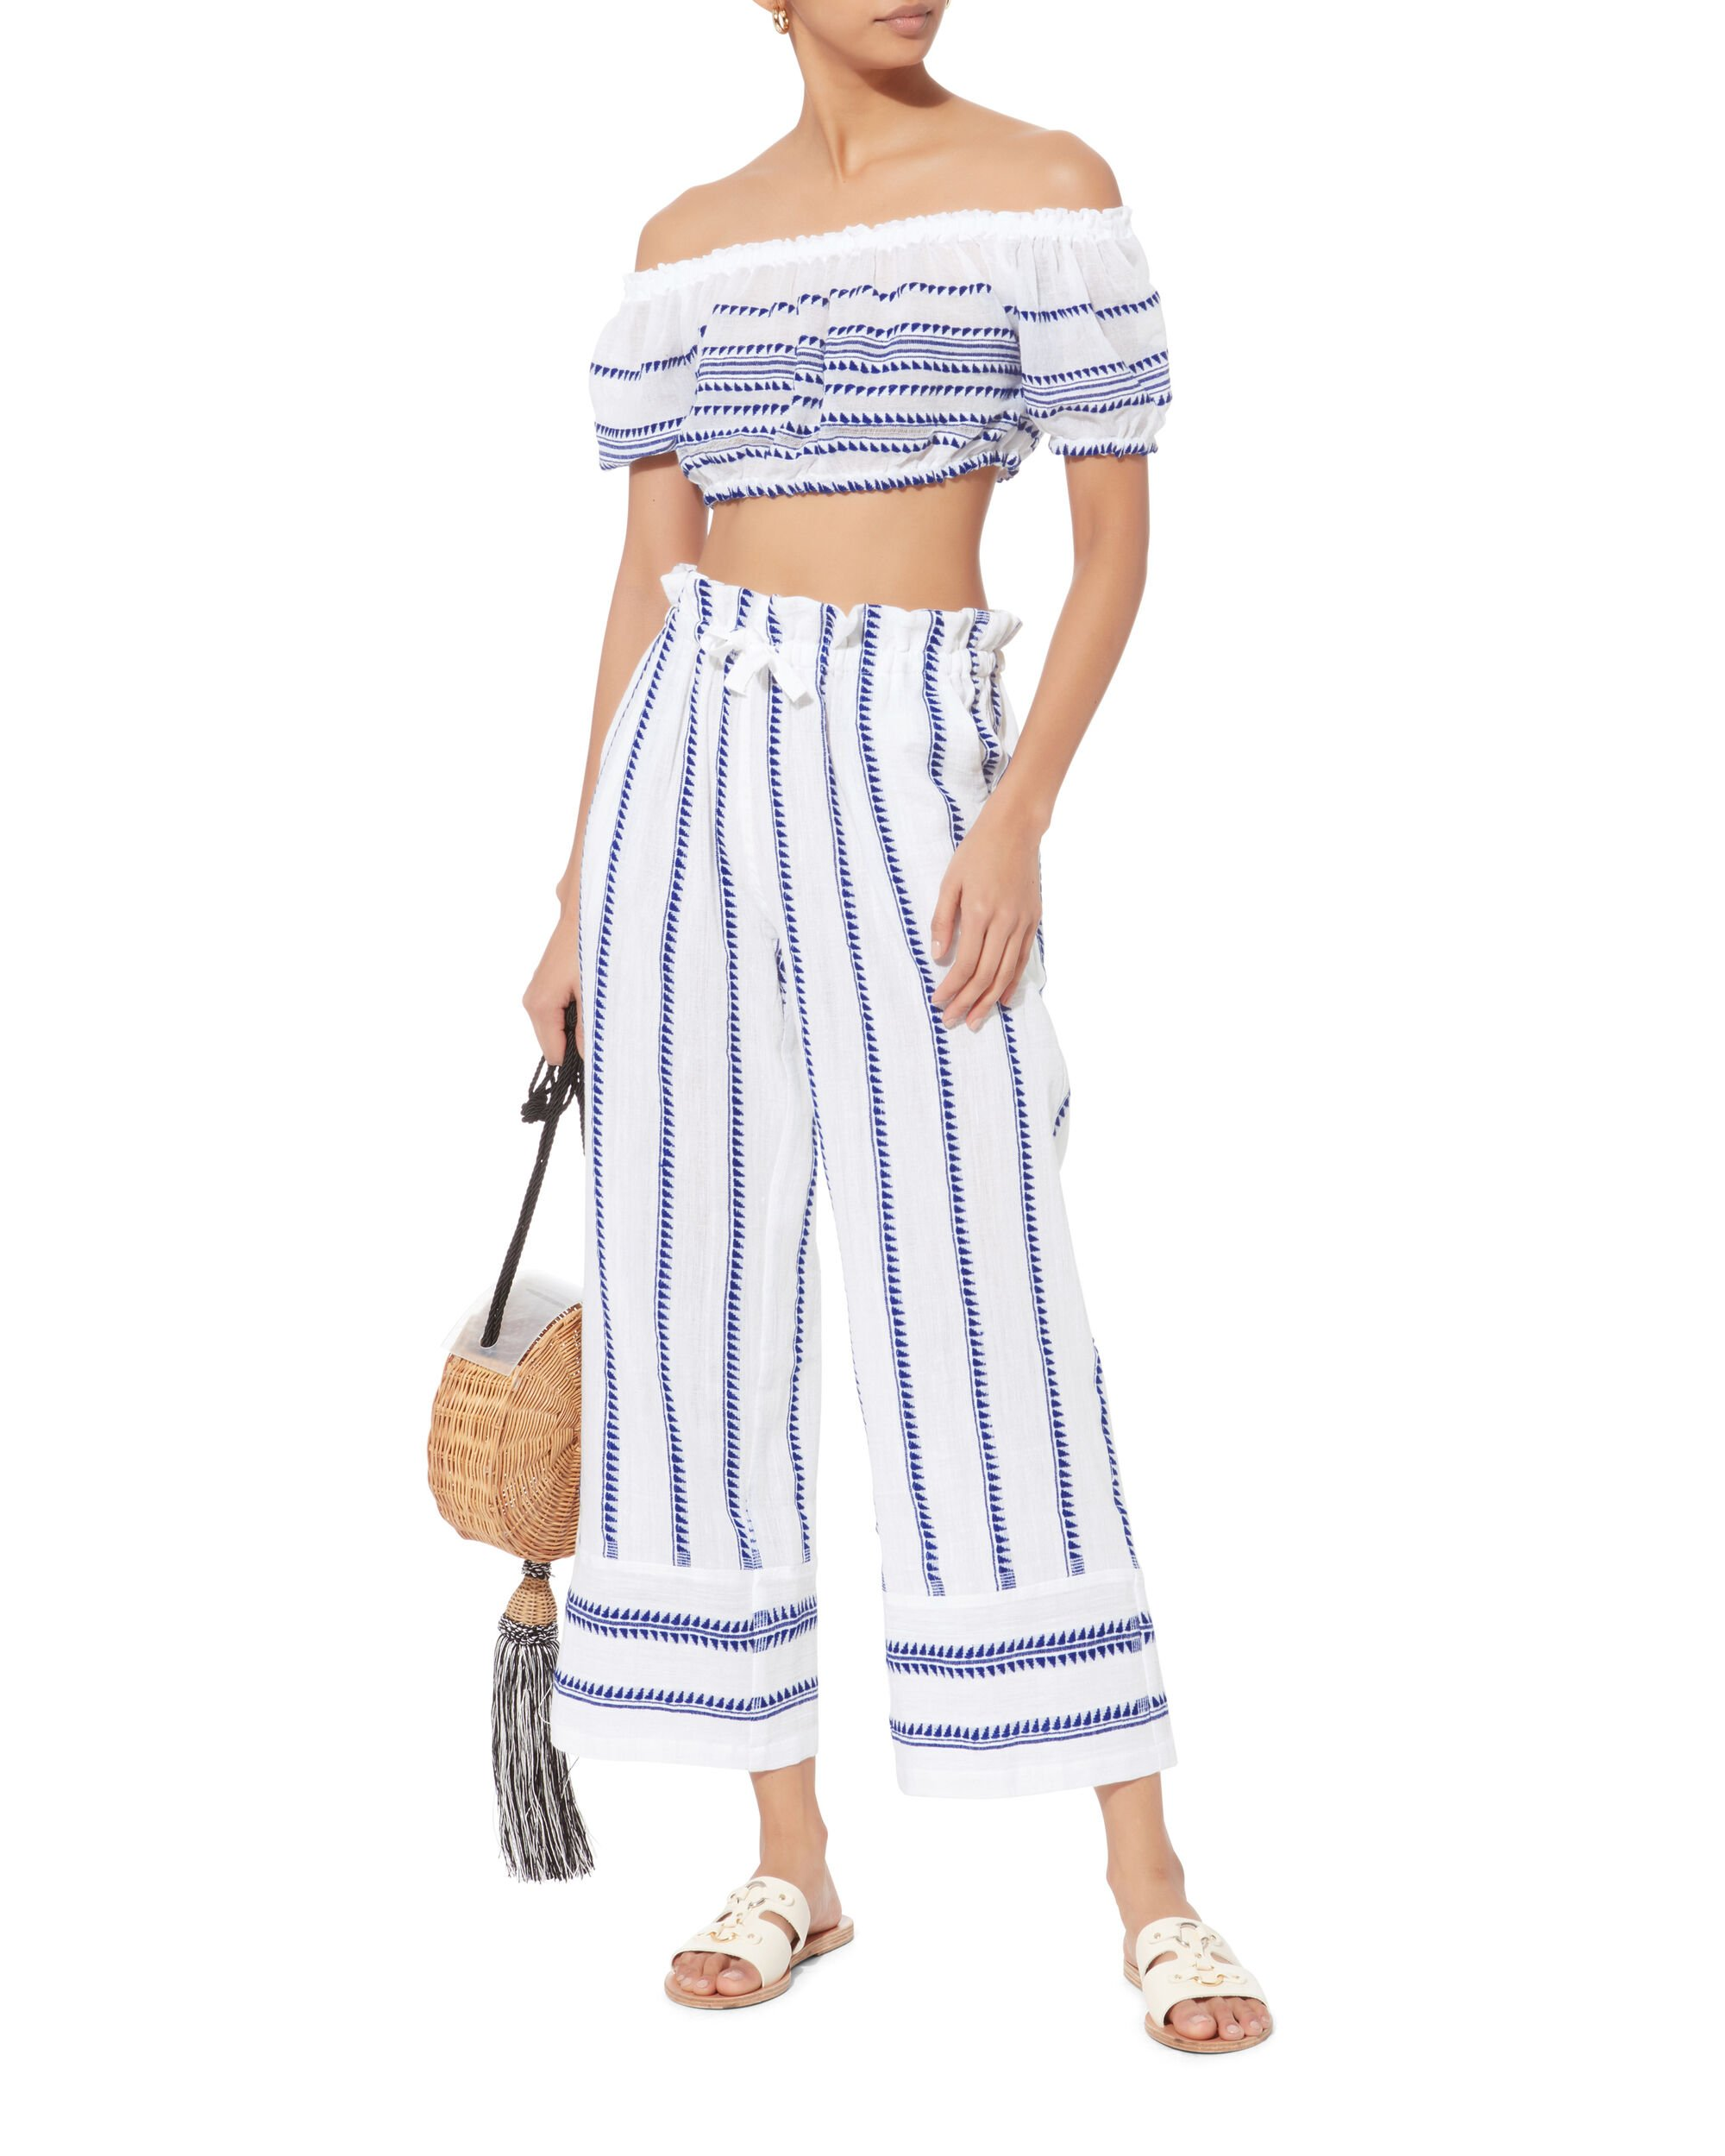 Lulu Off Shoulder Crop Top, BLUE-LT, hi-res